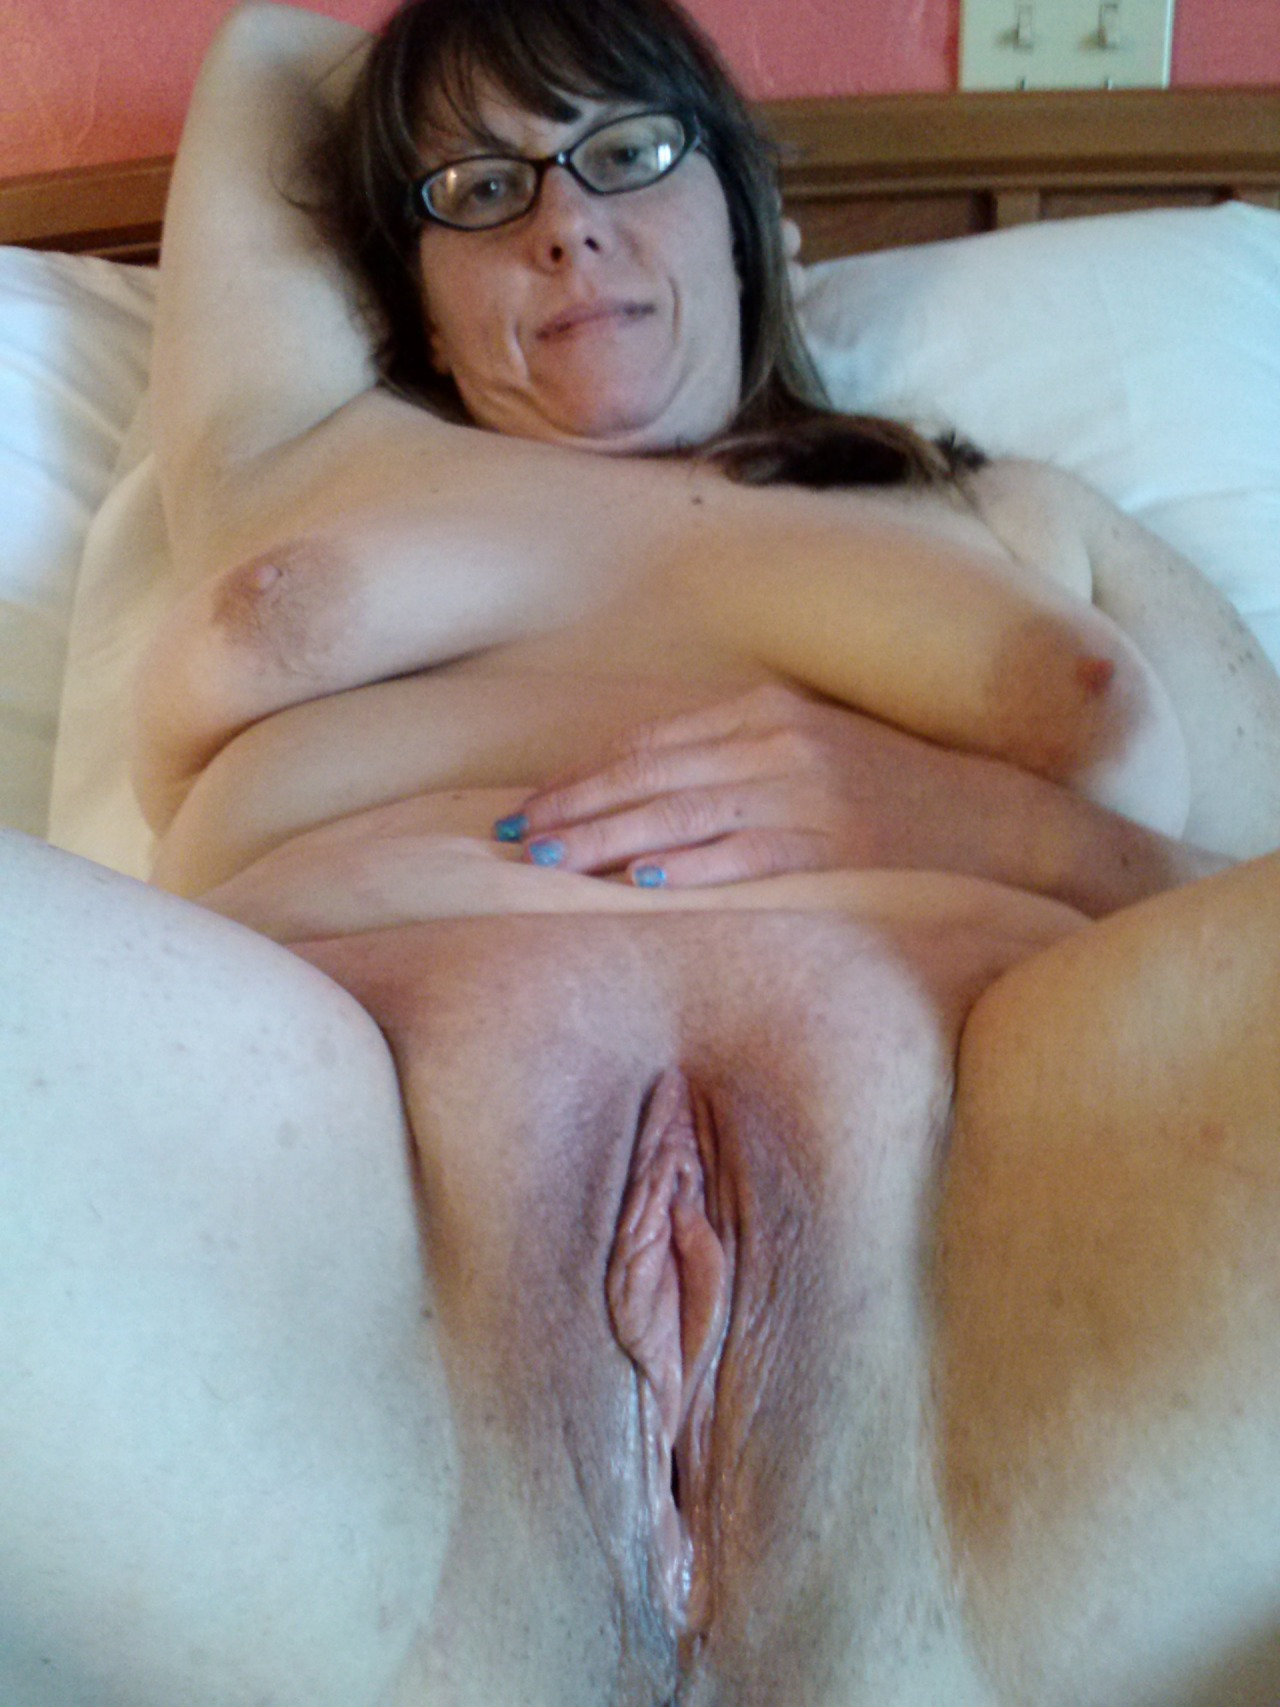 Voluptuous To Ons Seeking Woman 60 Man 55